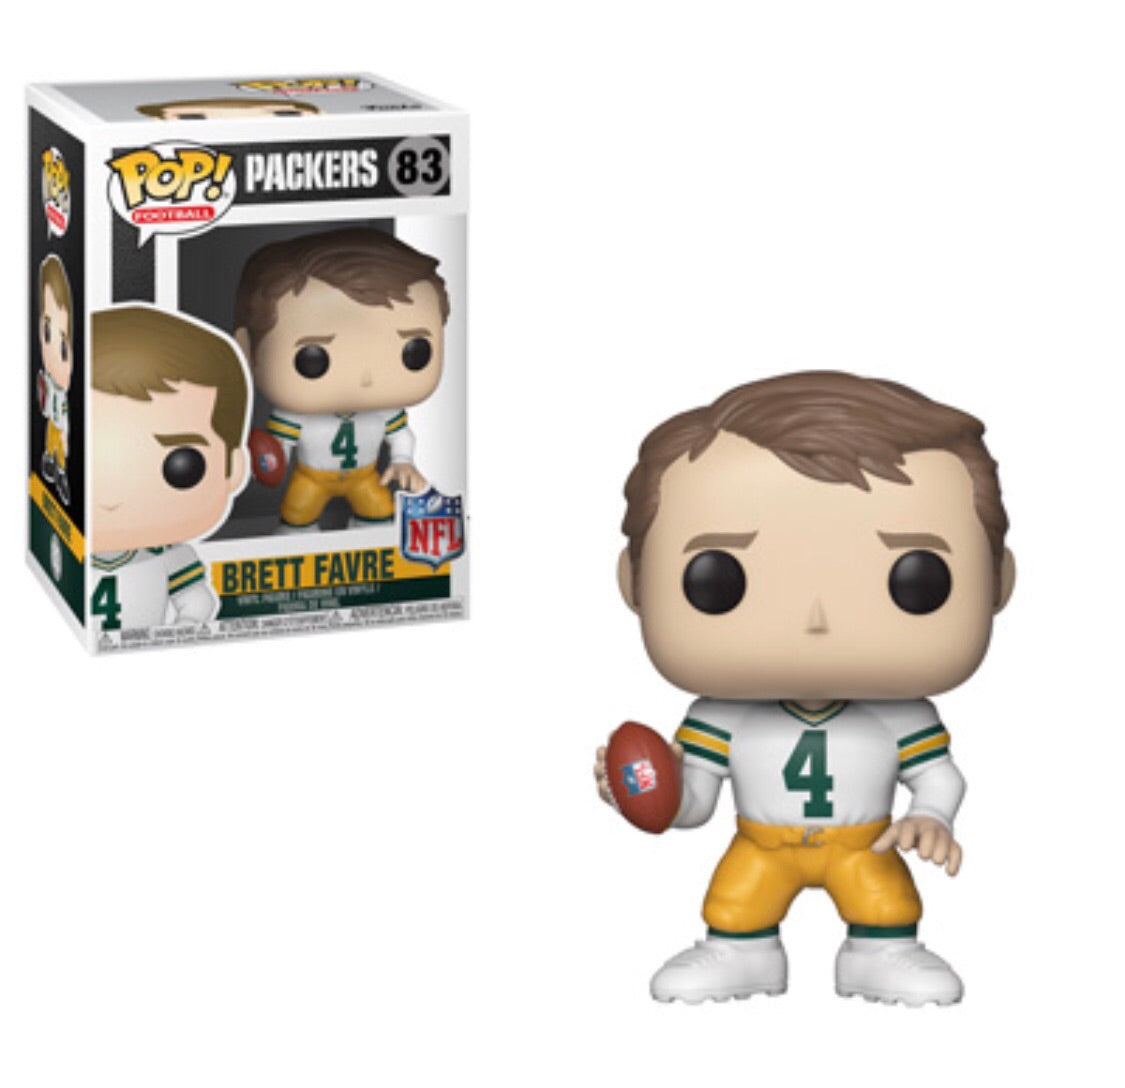 Pop! NFL Legends Brett Favre